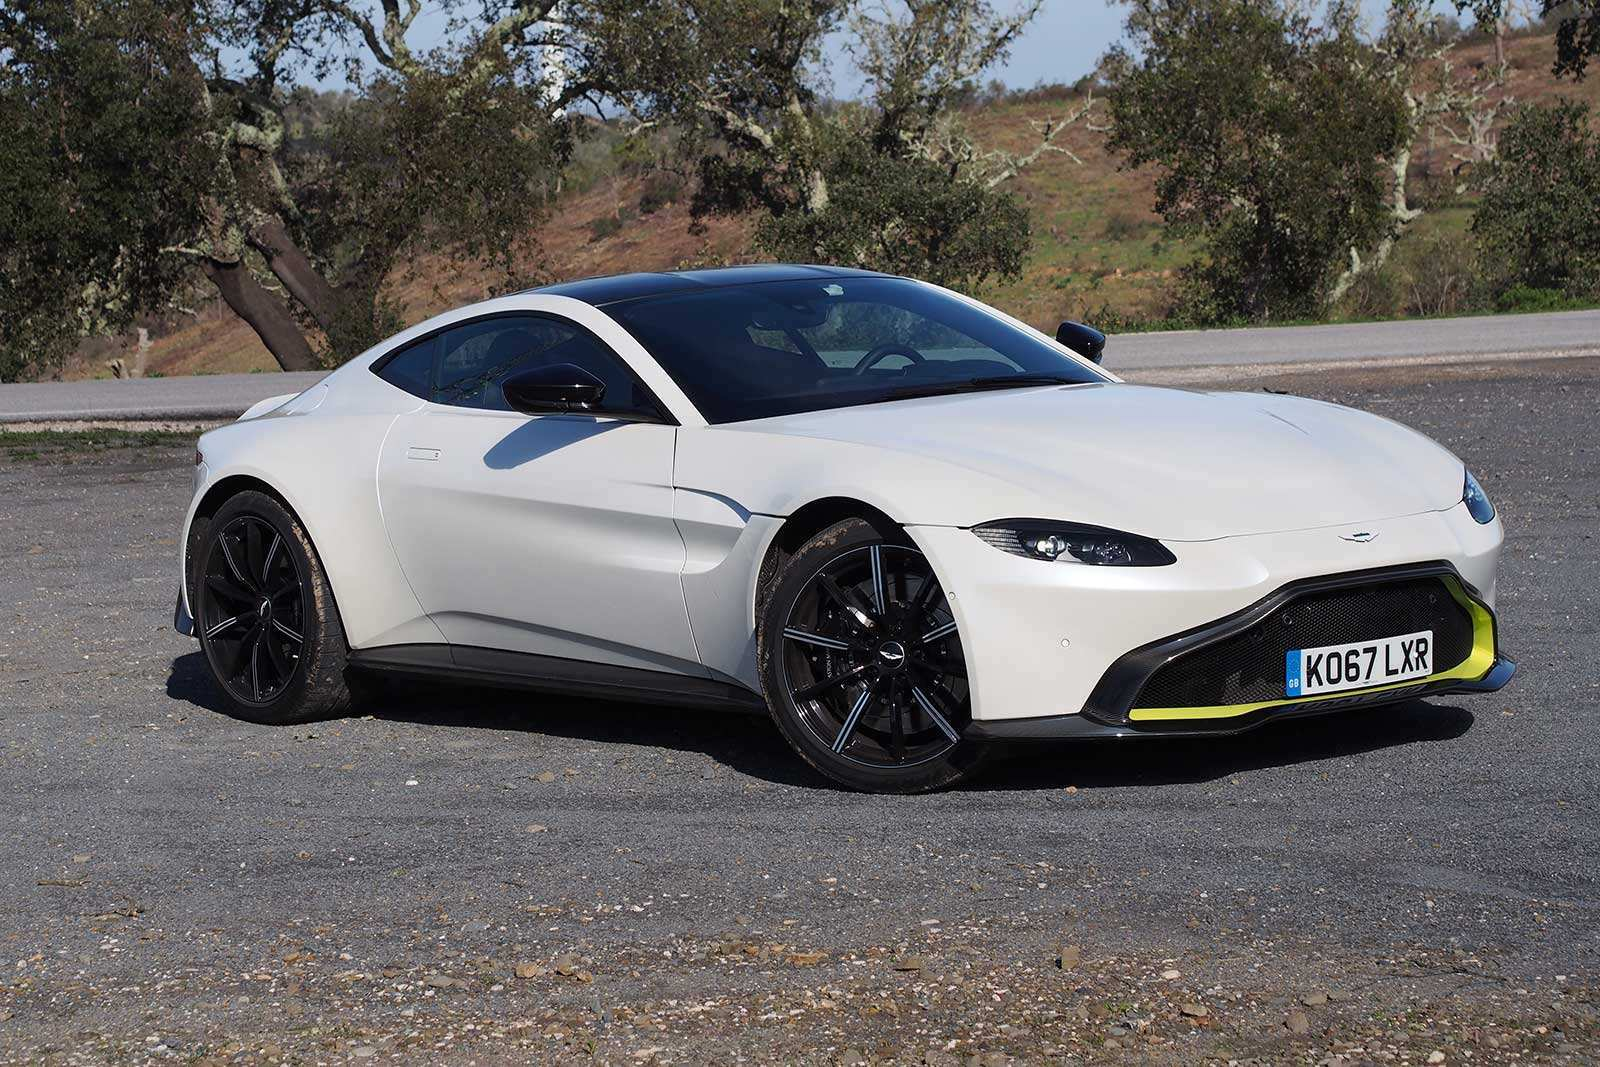 86 All New 2019 Aston Martin Vantage For Sale Ratings with 2019 Aston Martin Vantage For Sale